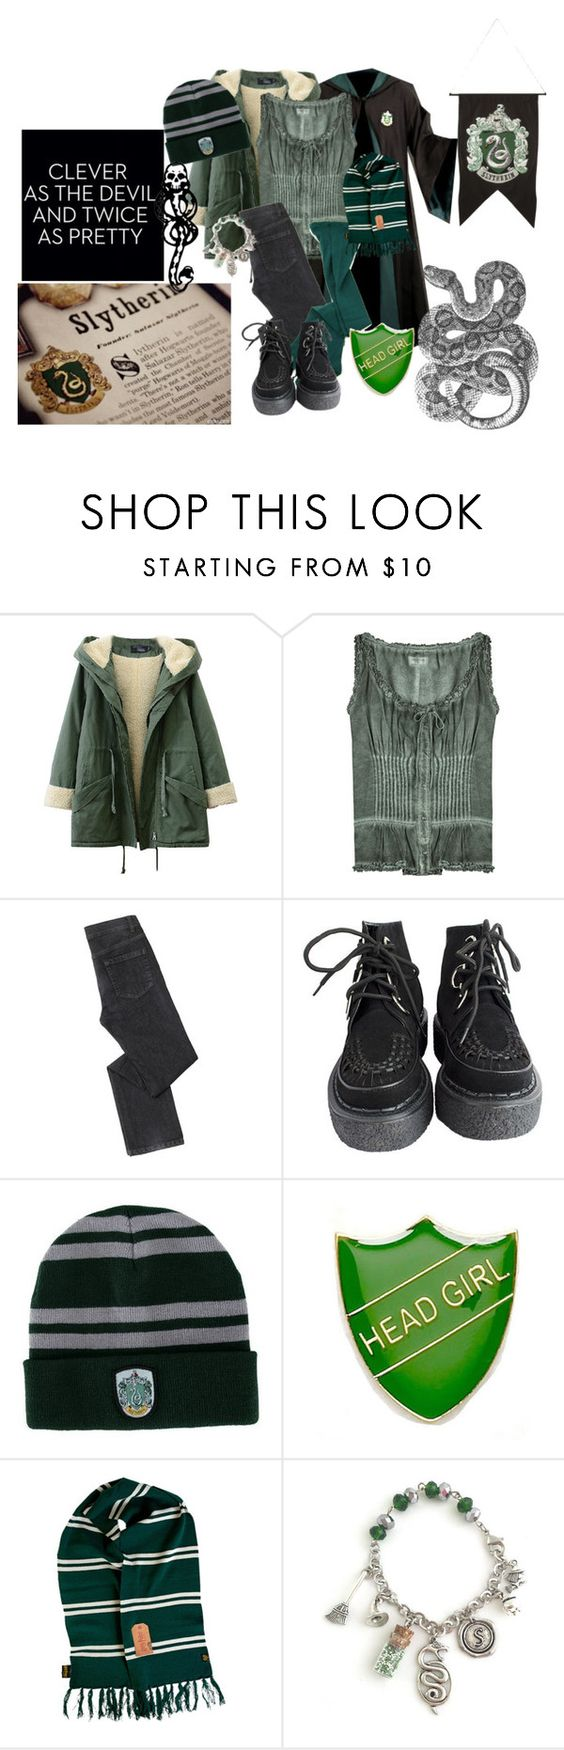 """""""If I got into hogwarts"""" by wynysc23 ❤ liked on Polyvore featuring True Religion, Baukjen, Elope and mark."""